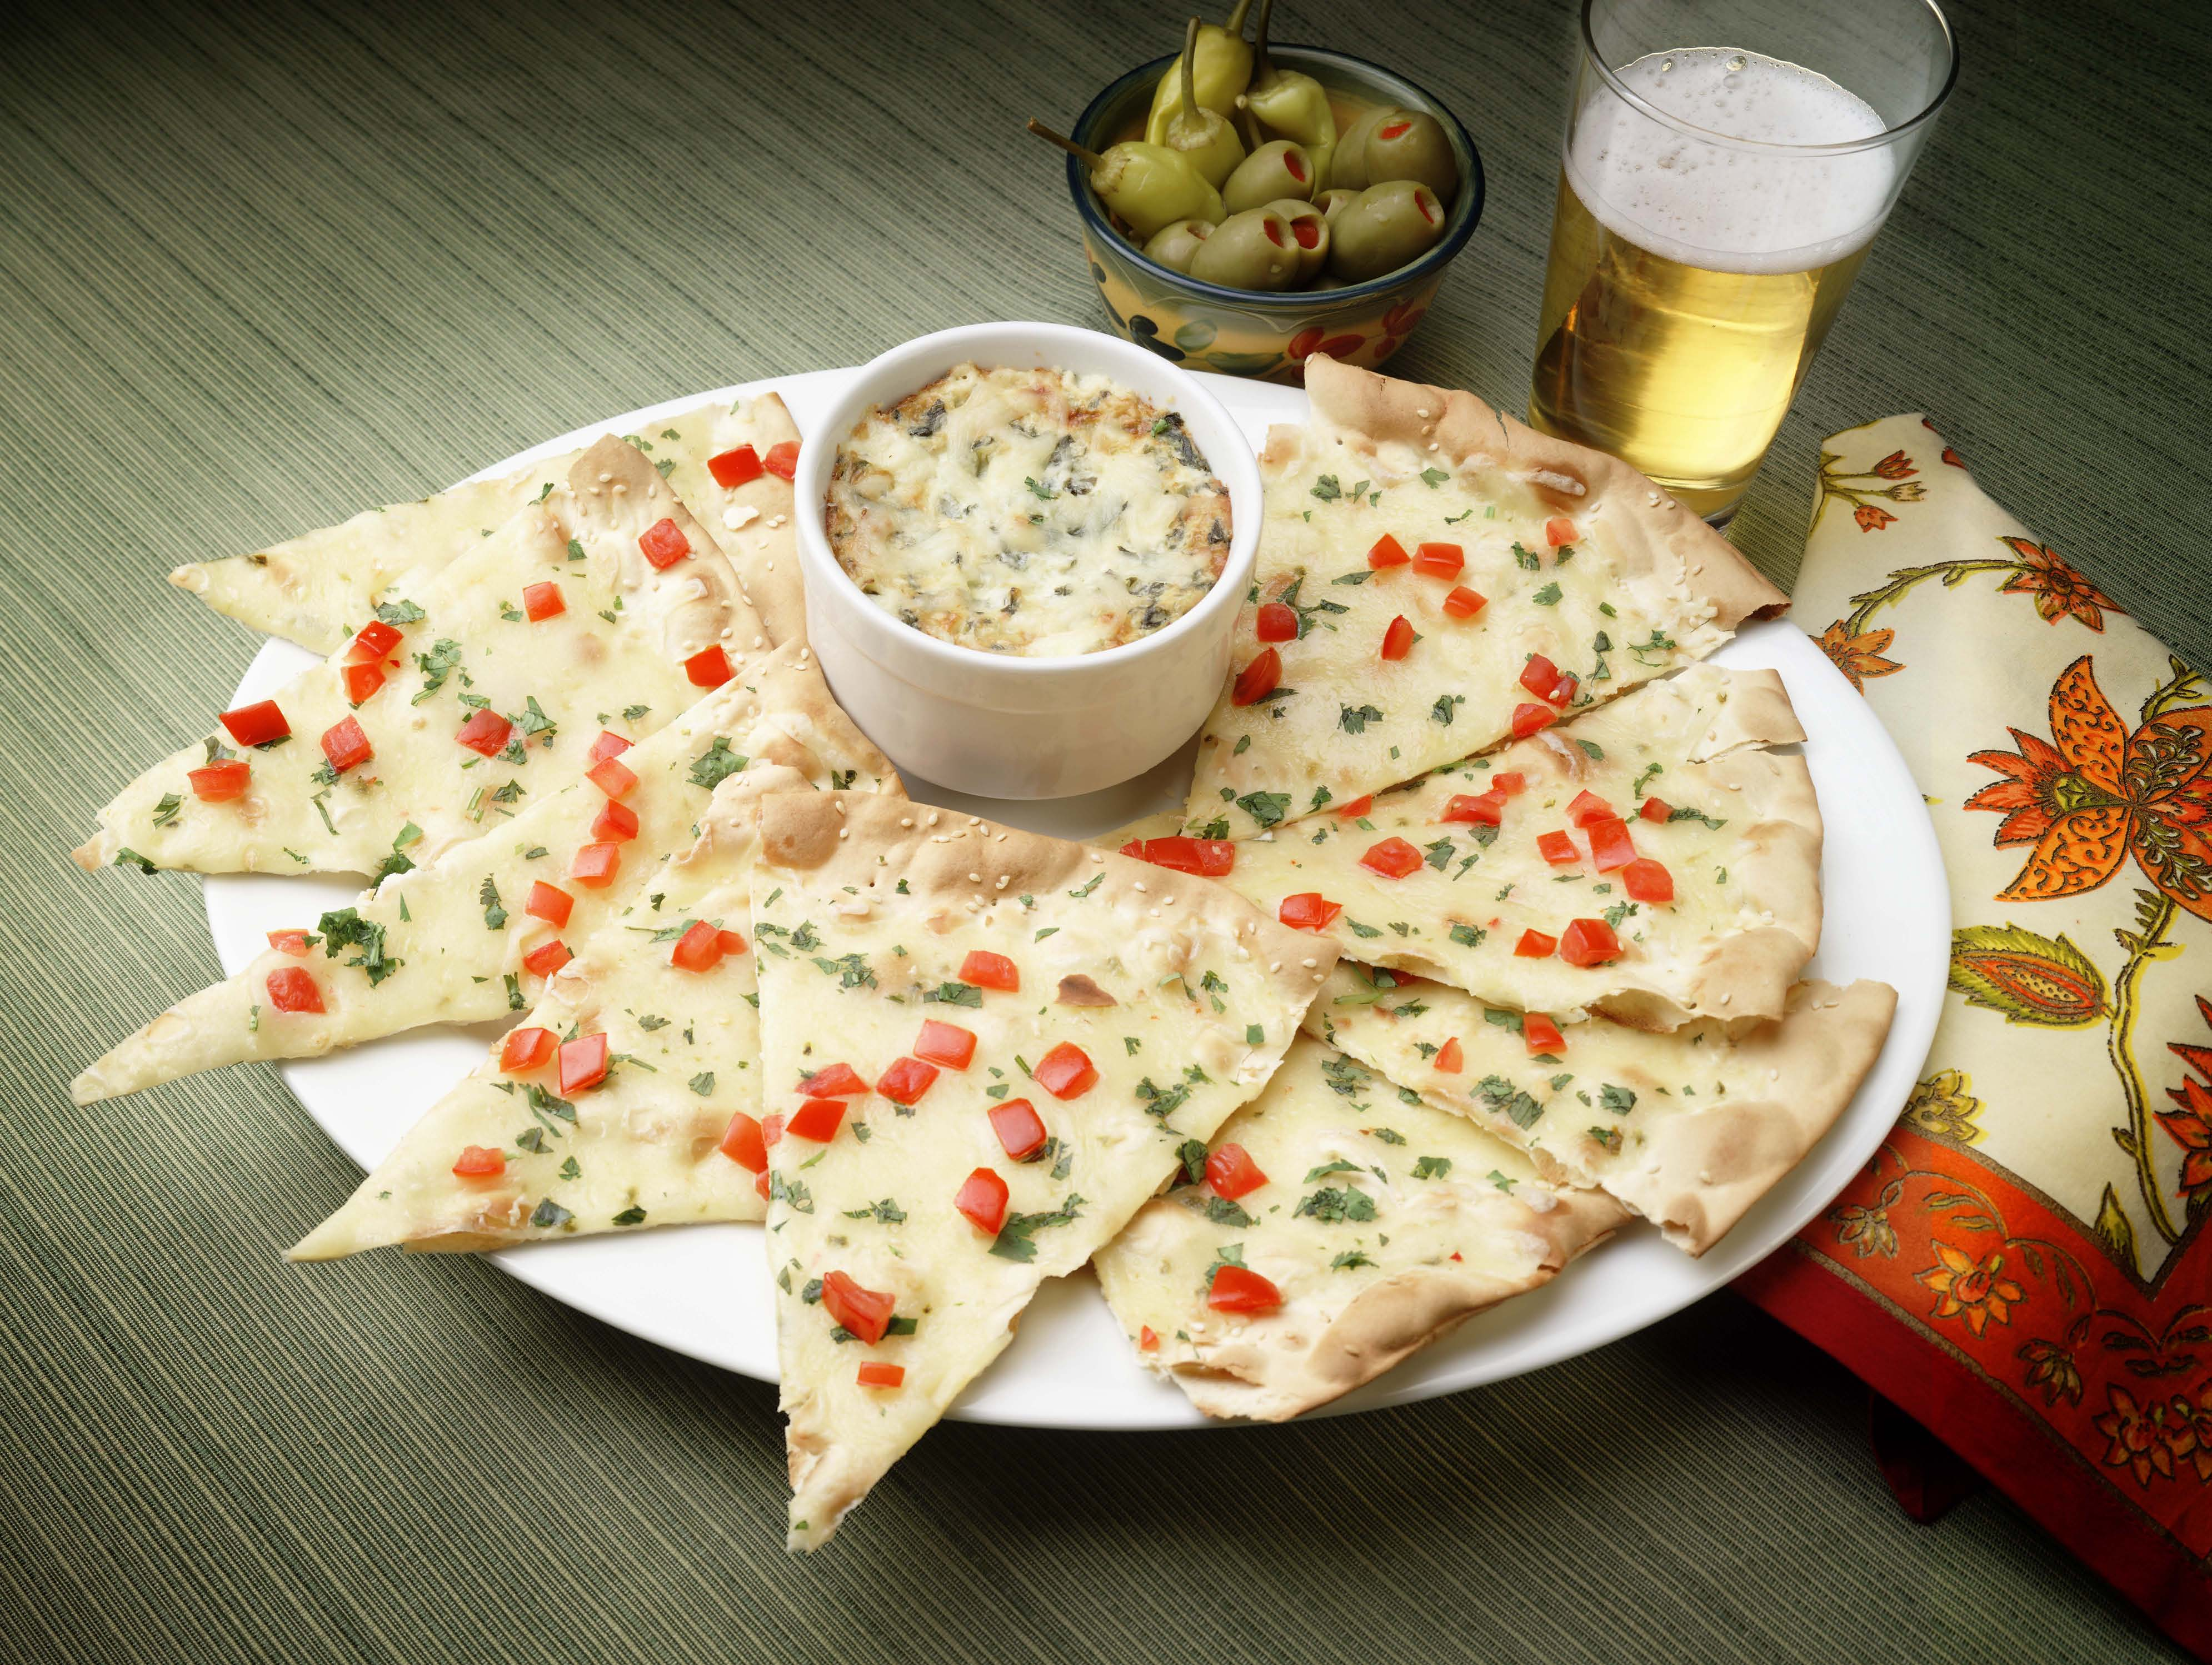 Hot Spinach and Artichoke Dip with Valley Lahvosh™ Crackerbread picture